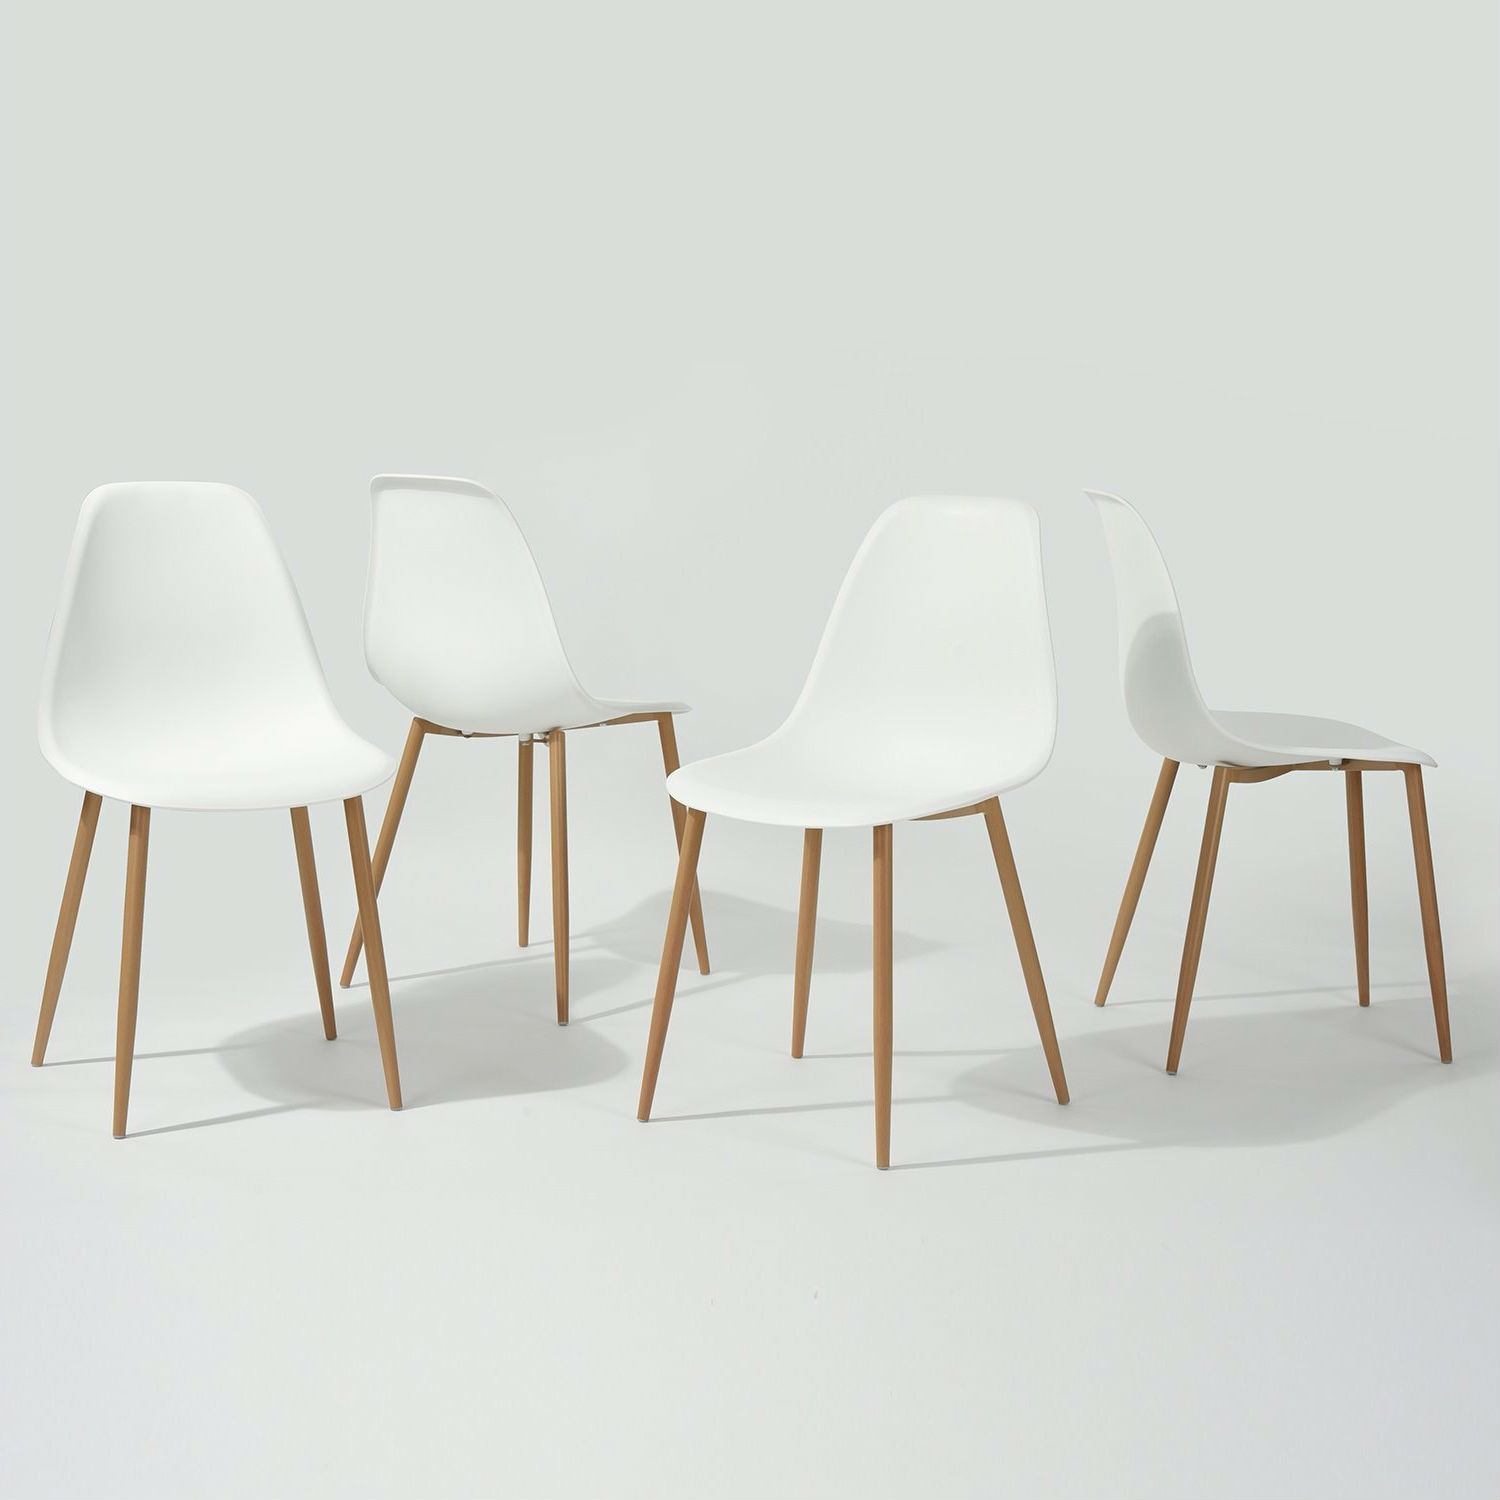 Pleasant Set Of 4 Modern Mid Century Style Dining Chairs In White With Wood Finish Legs Ibusinesslaw Wood Chair Design Ideas Ibusinesslaworg